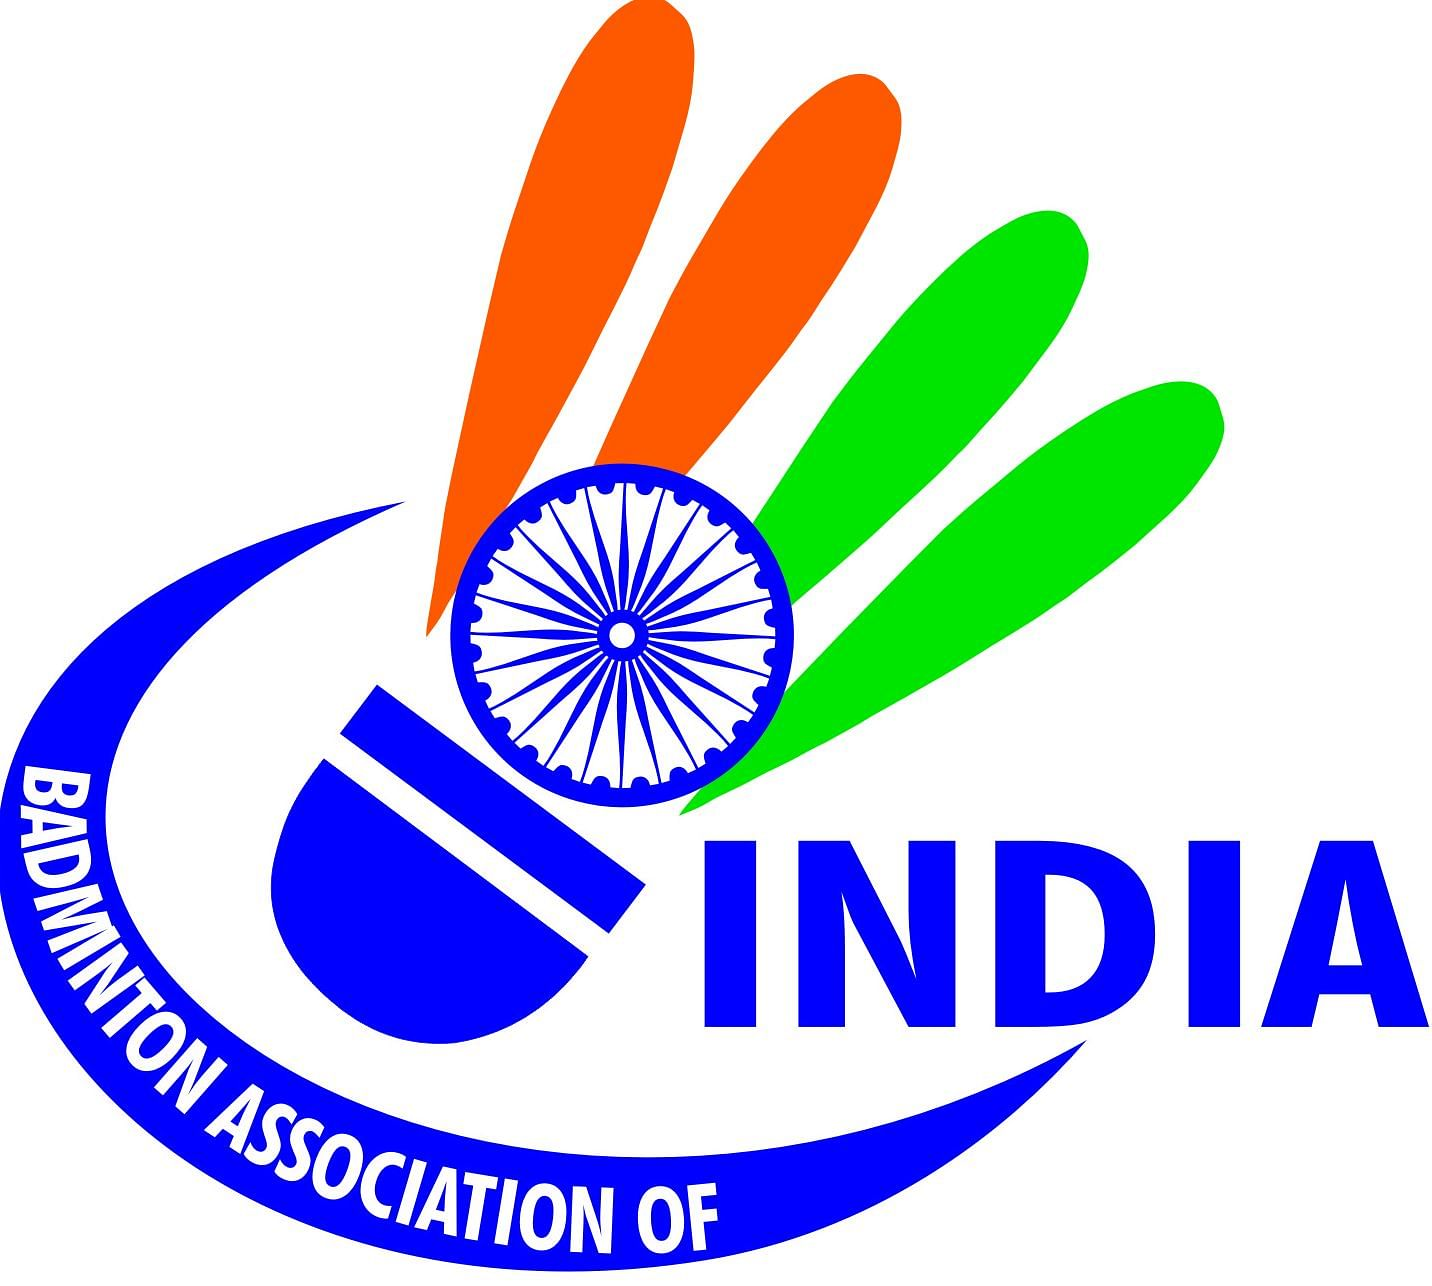 Badminton Association of India likely to be taken to court for Indian Badminton League contract termination